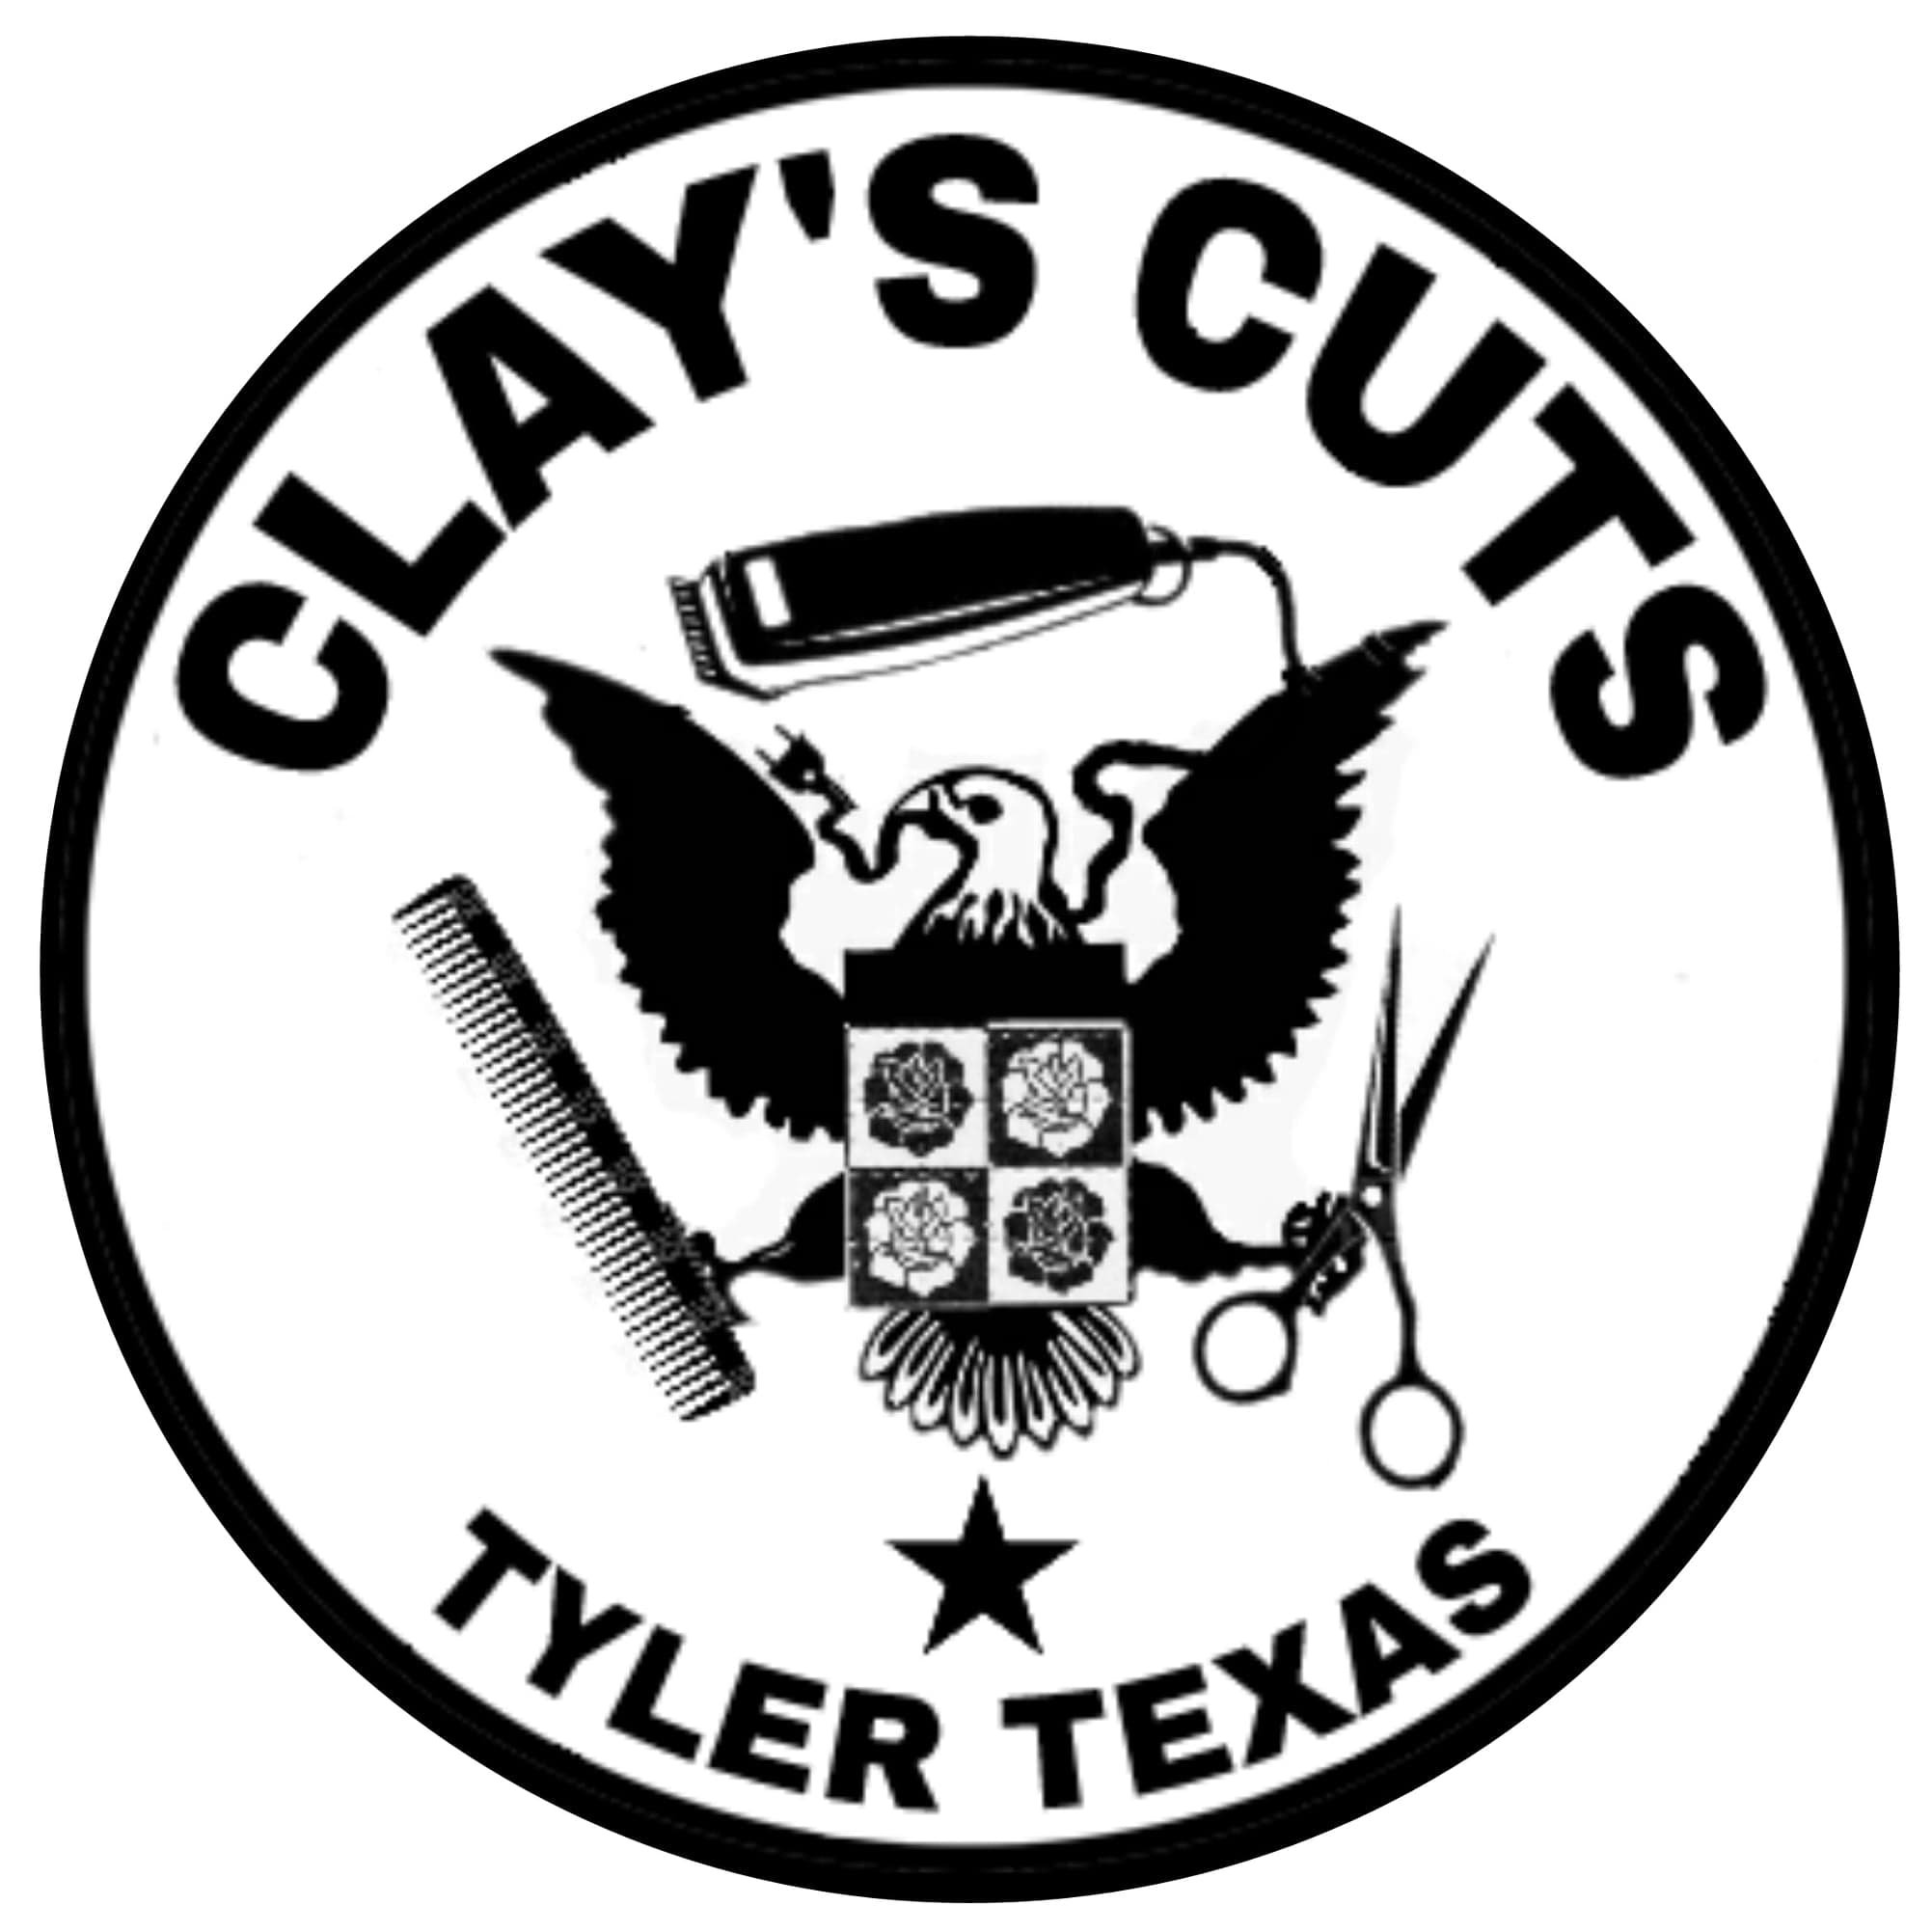 Clay's Cuts Logo - Black Image and Lettering on a White Background